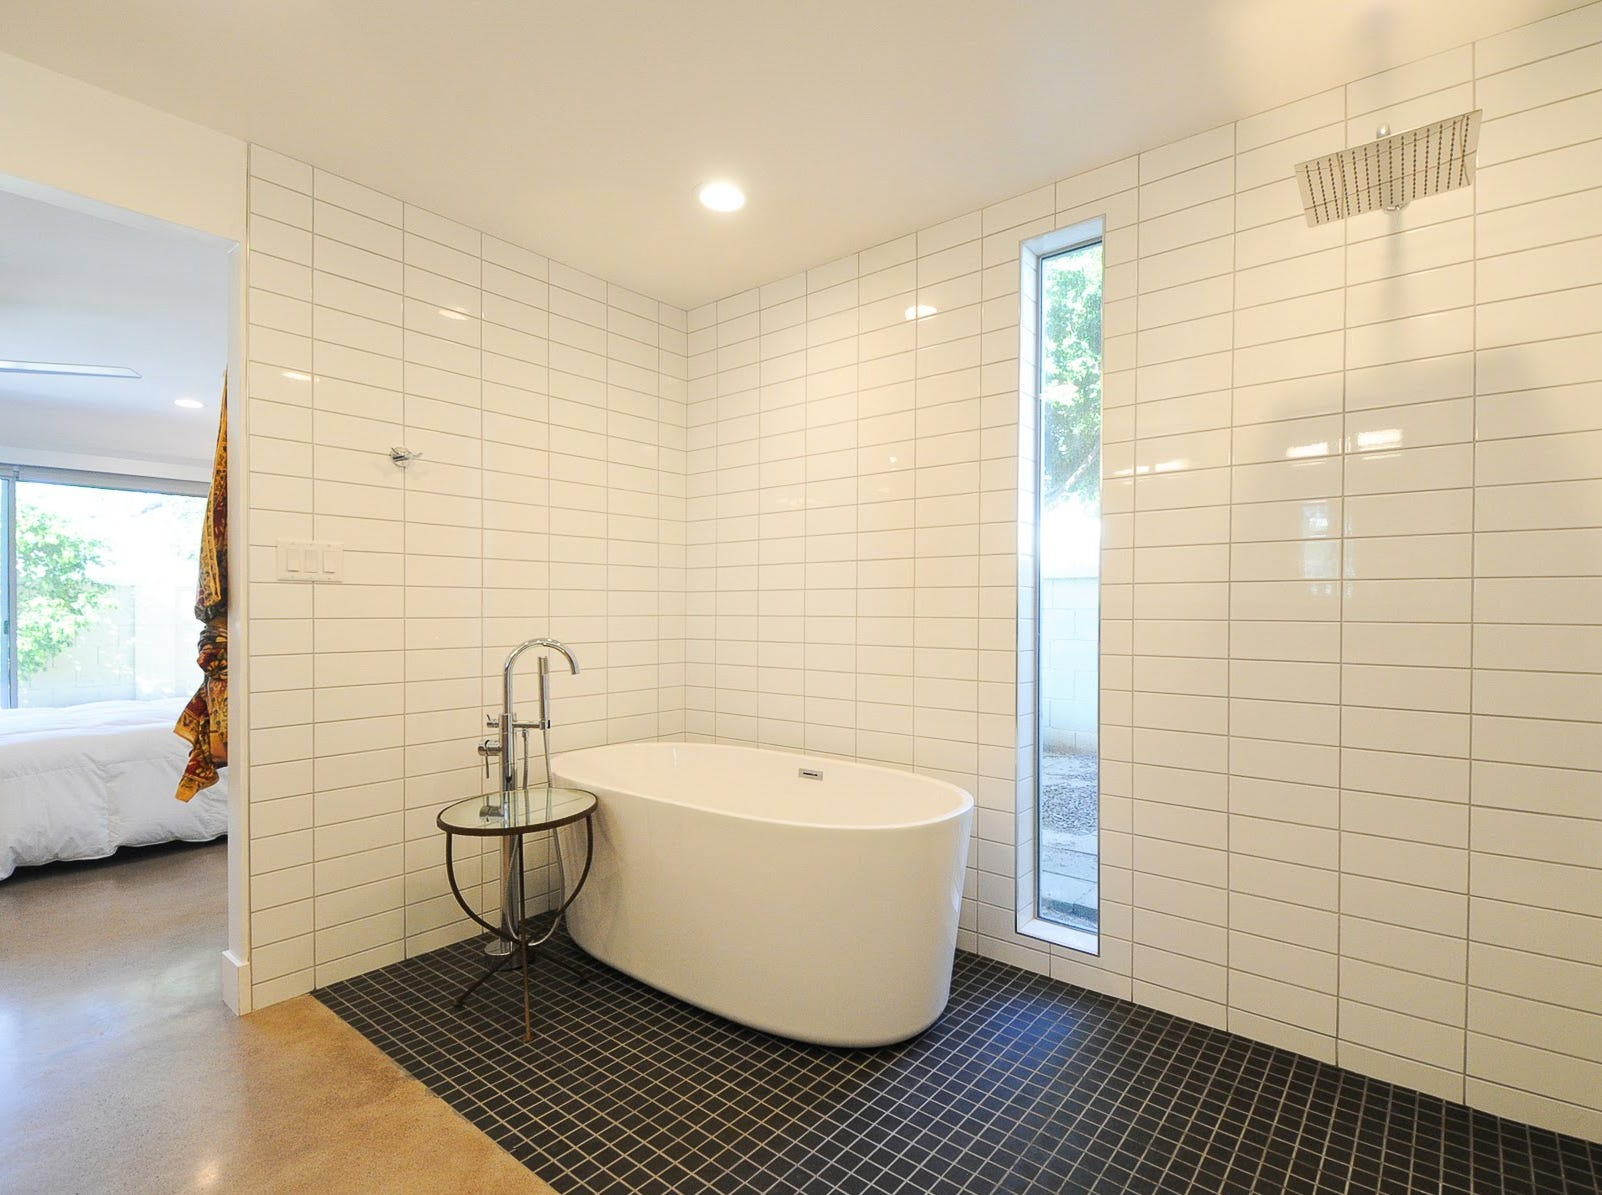 The master bath features a uniquely open shower suite, with a sleek soaking tub and a square, rainfall shower head.